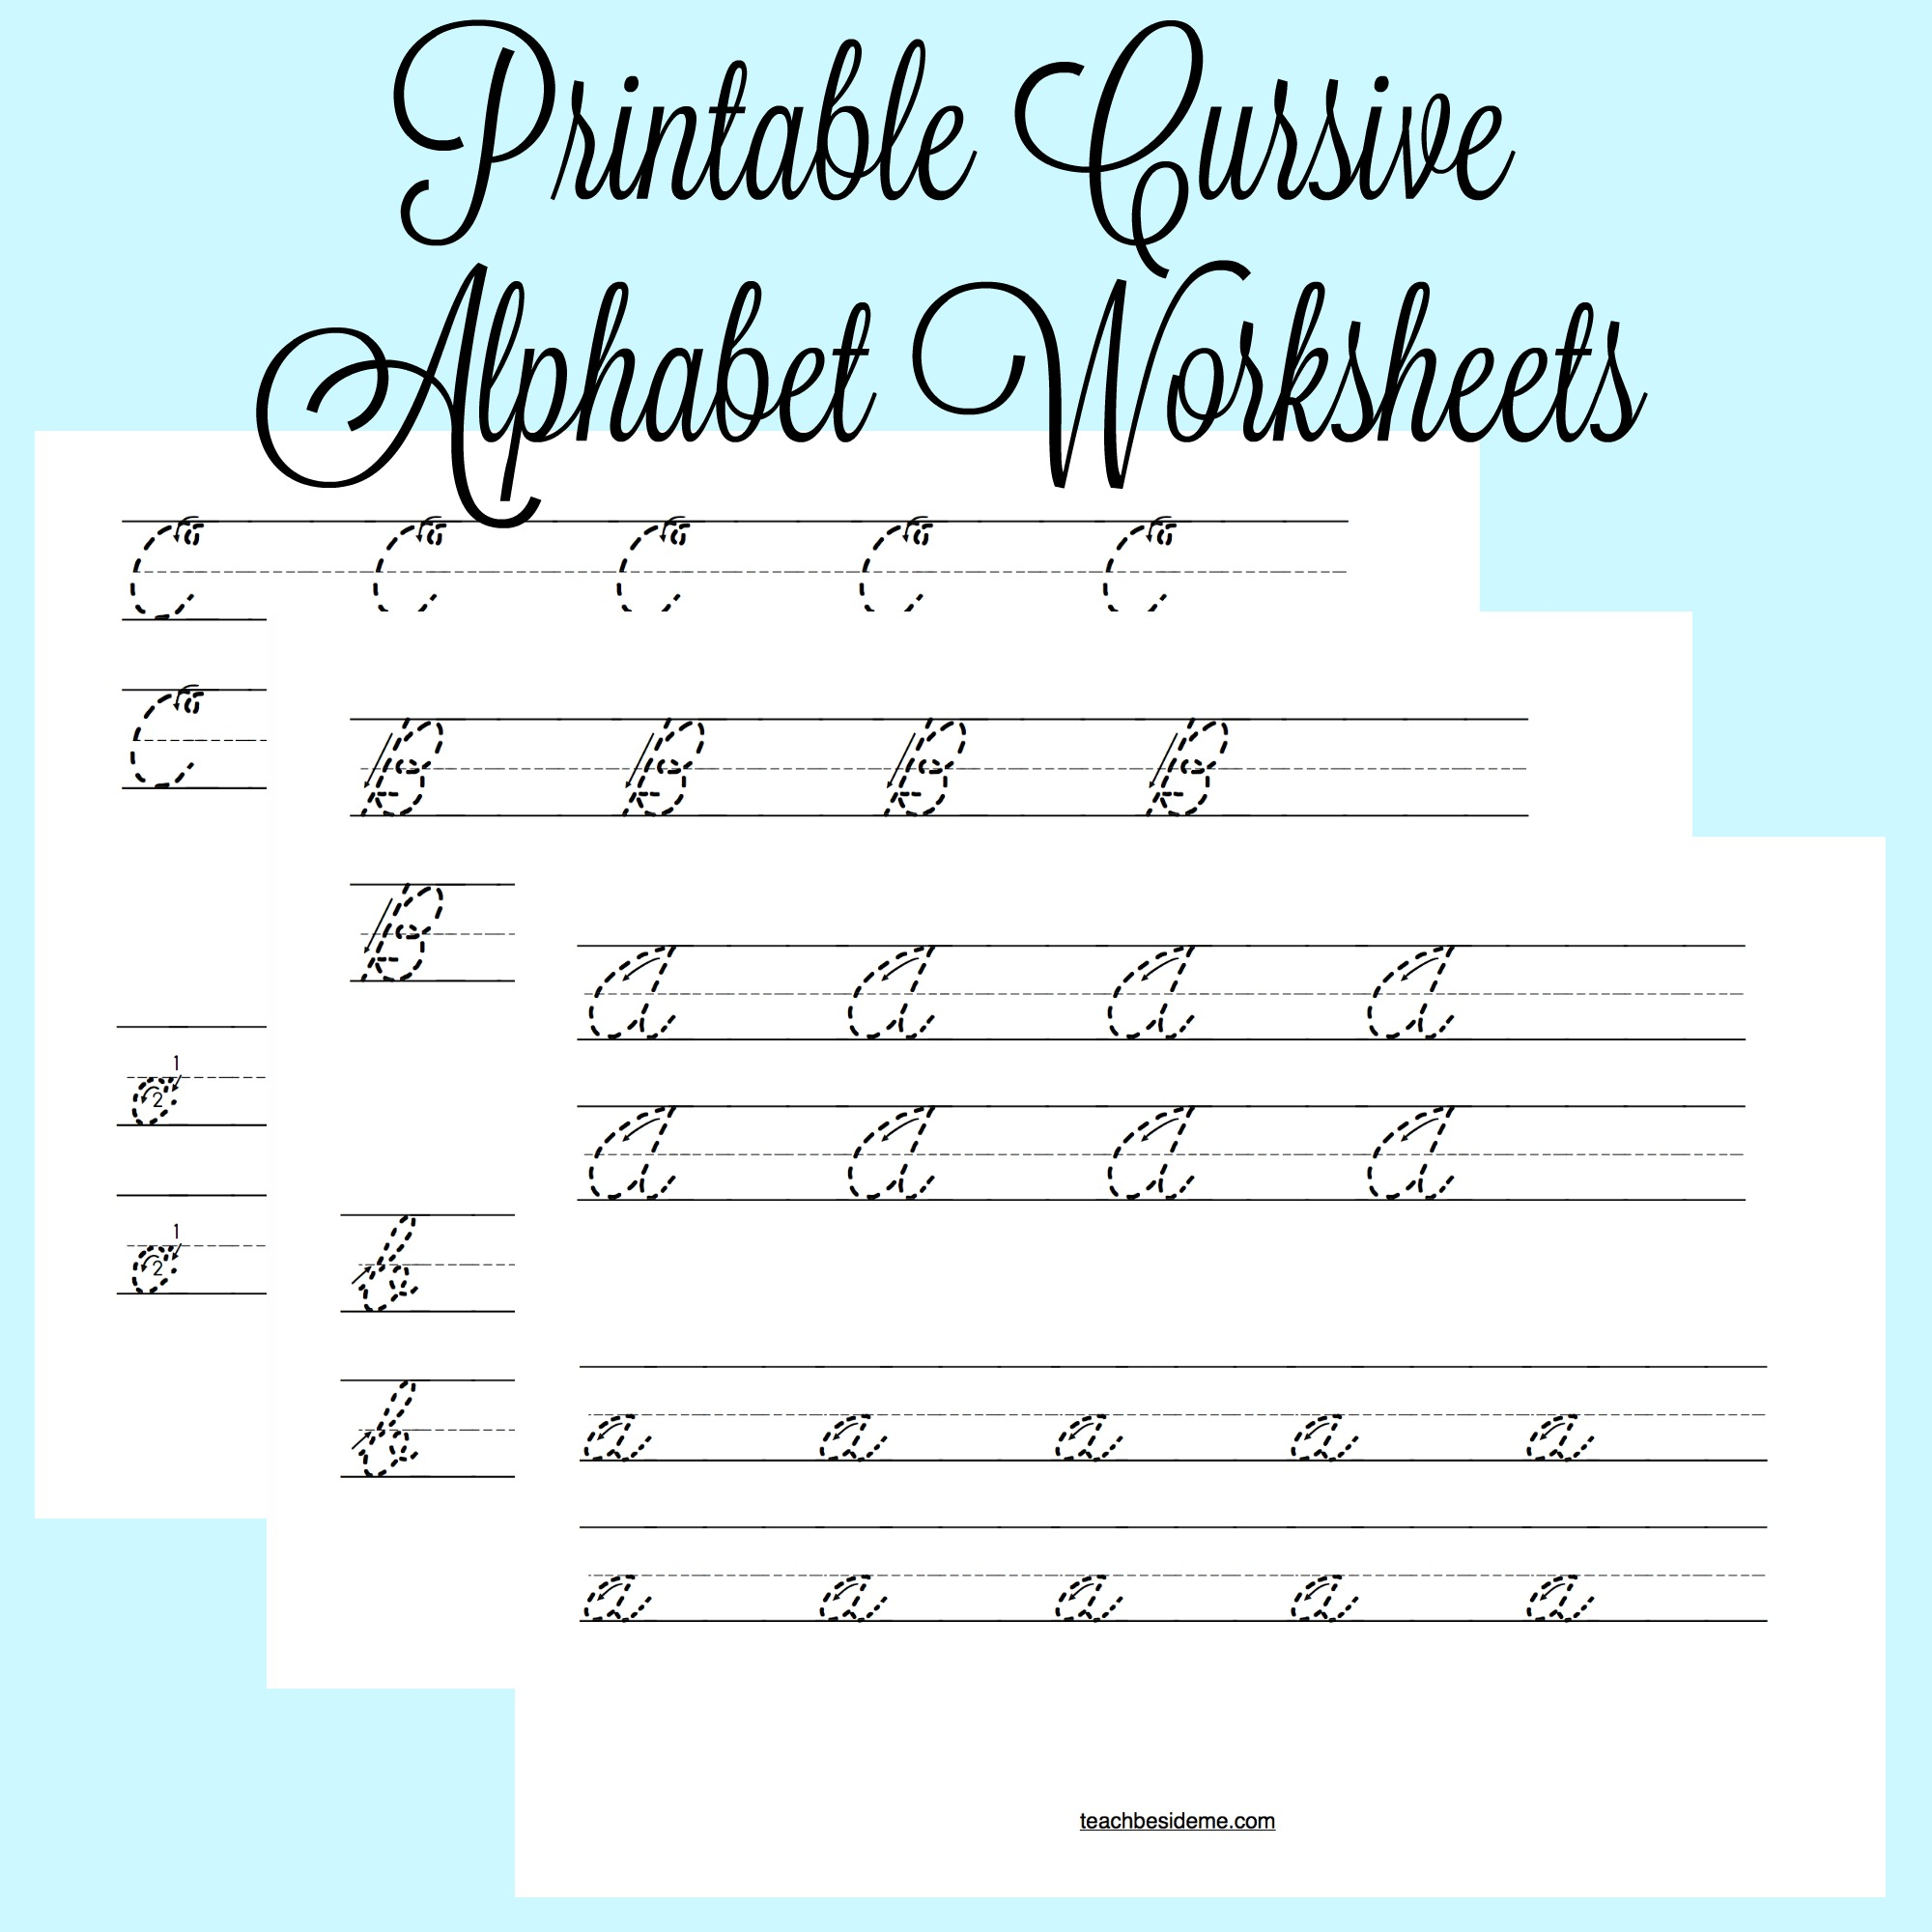 Printable Cursive Alphabet Worksheets \u2013 Teach Beside Me Teaching Fractions Worksheets Printable Cursive Alphabet Worksheets $4 00